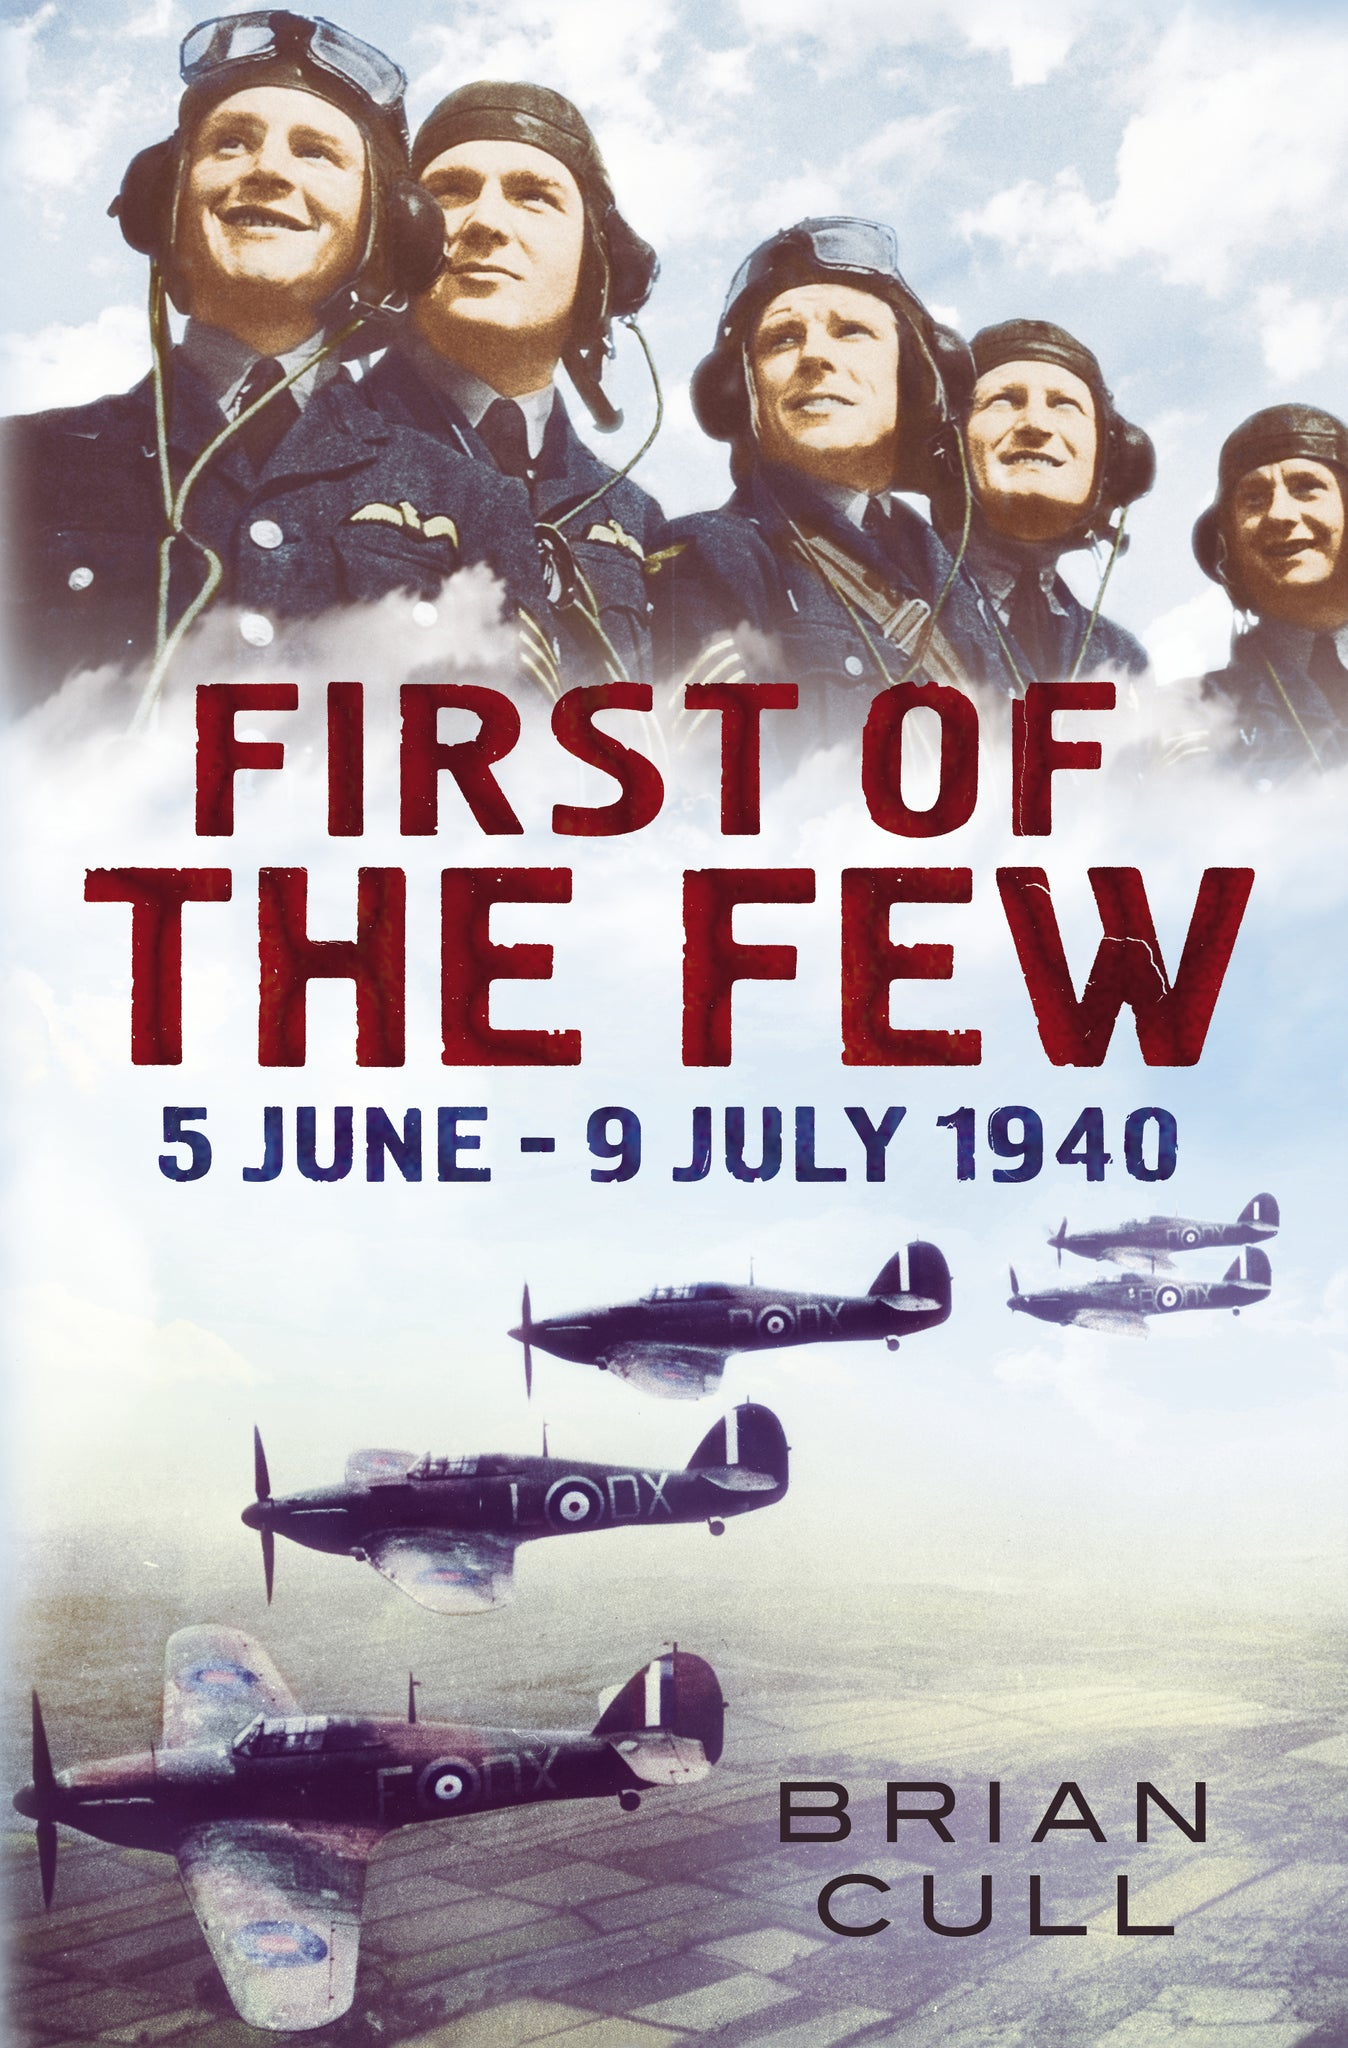 First of the Few: 5 June - 9 July 1940